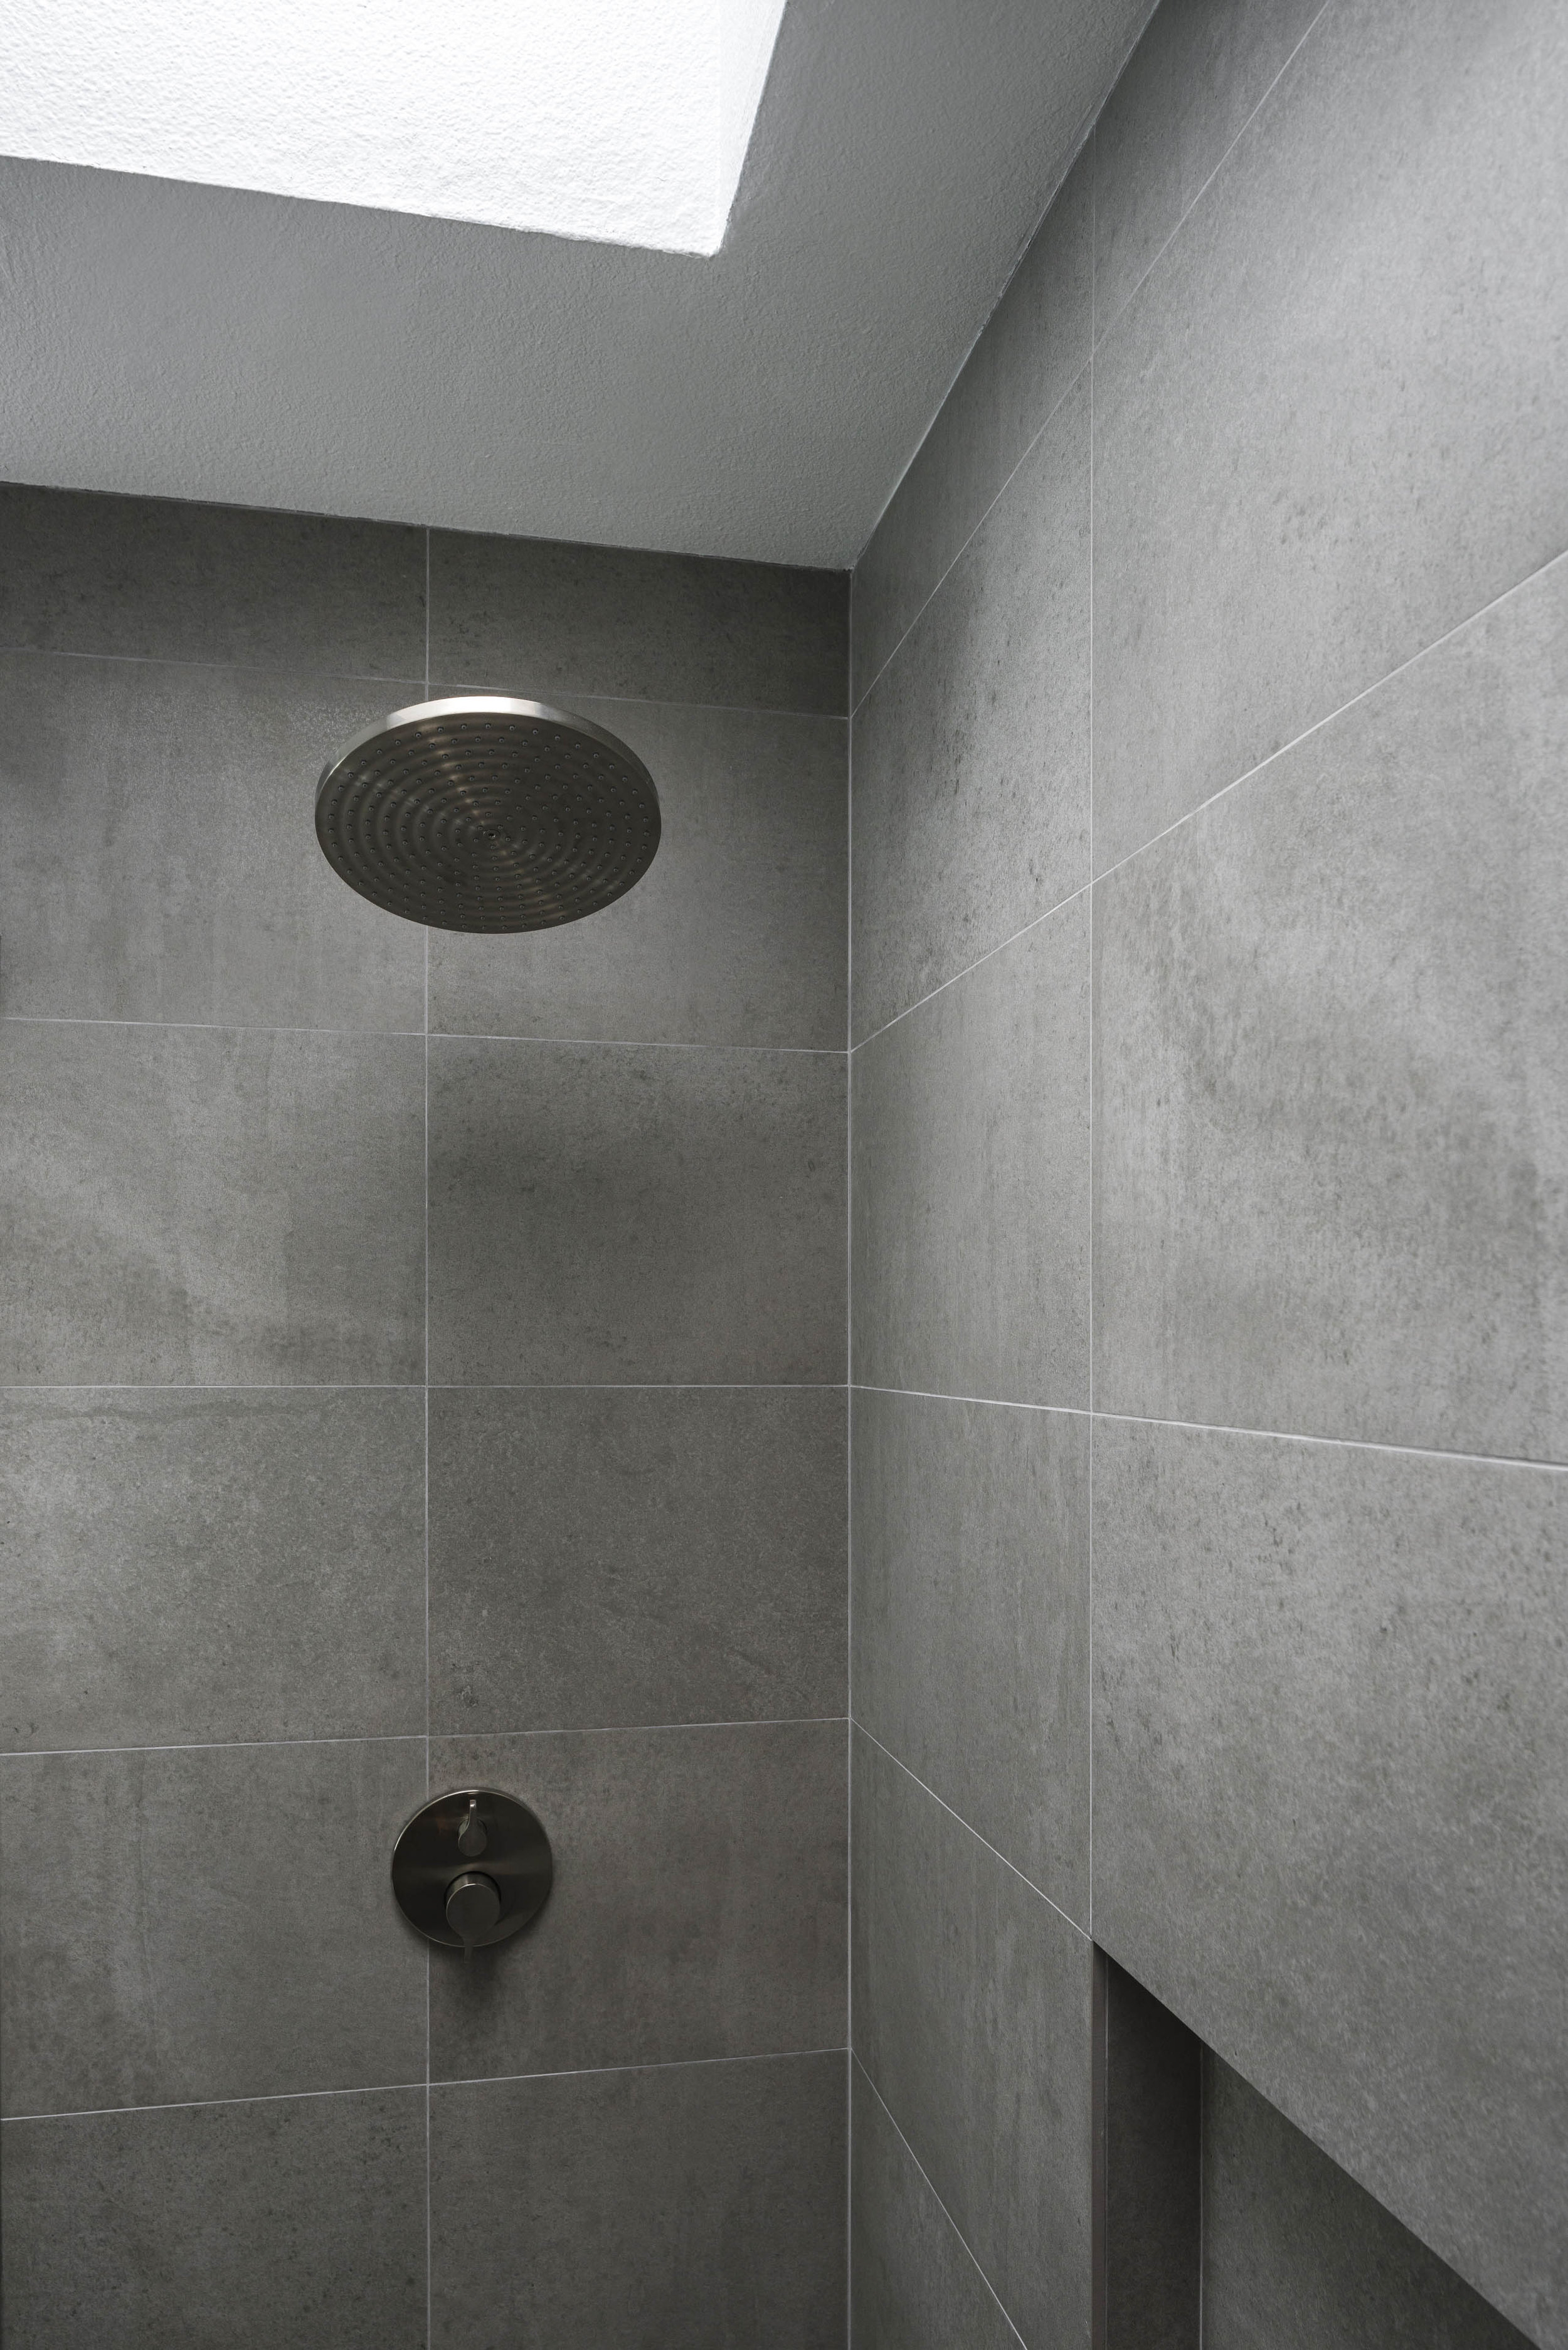 A clean modern shower